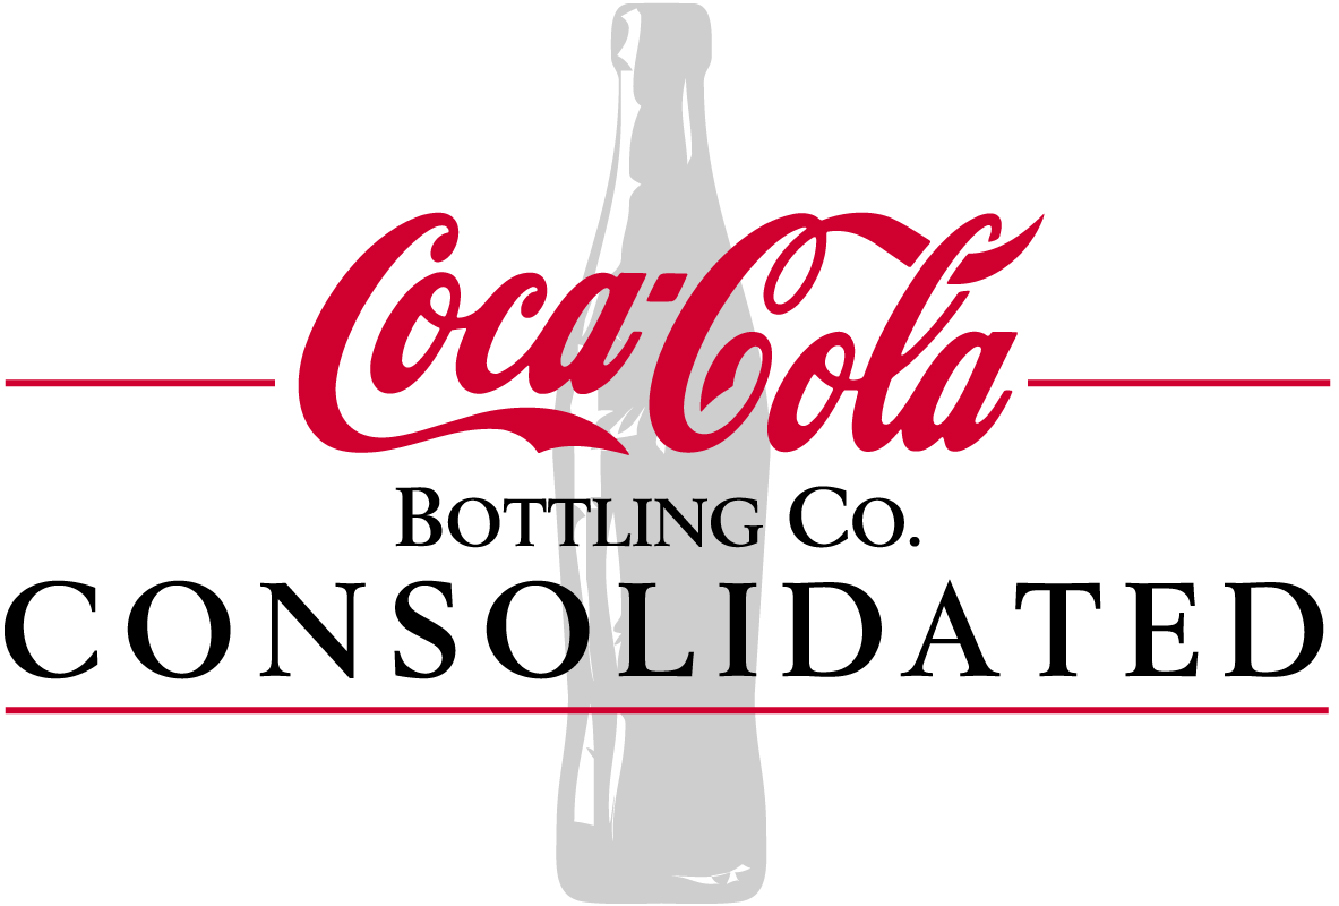 coke consolidated.jpg